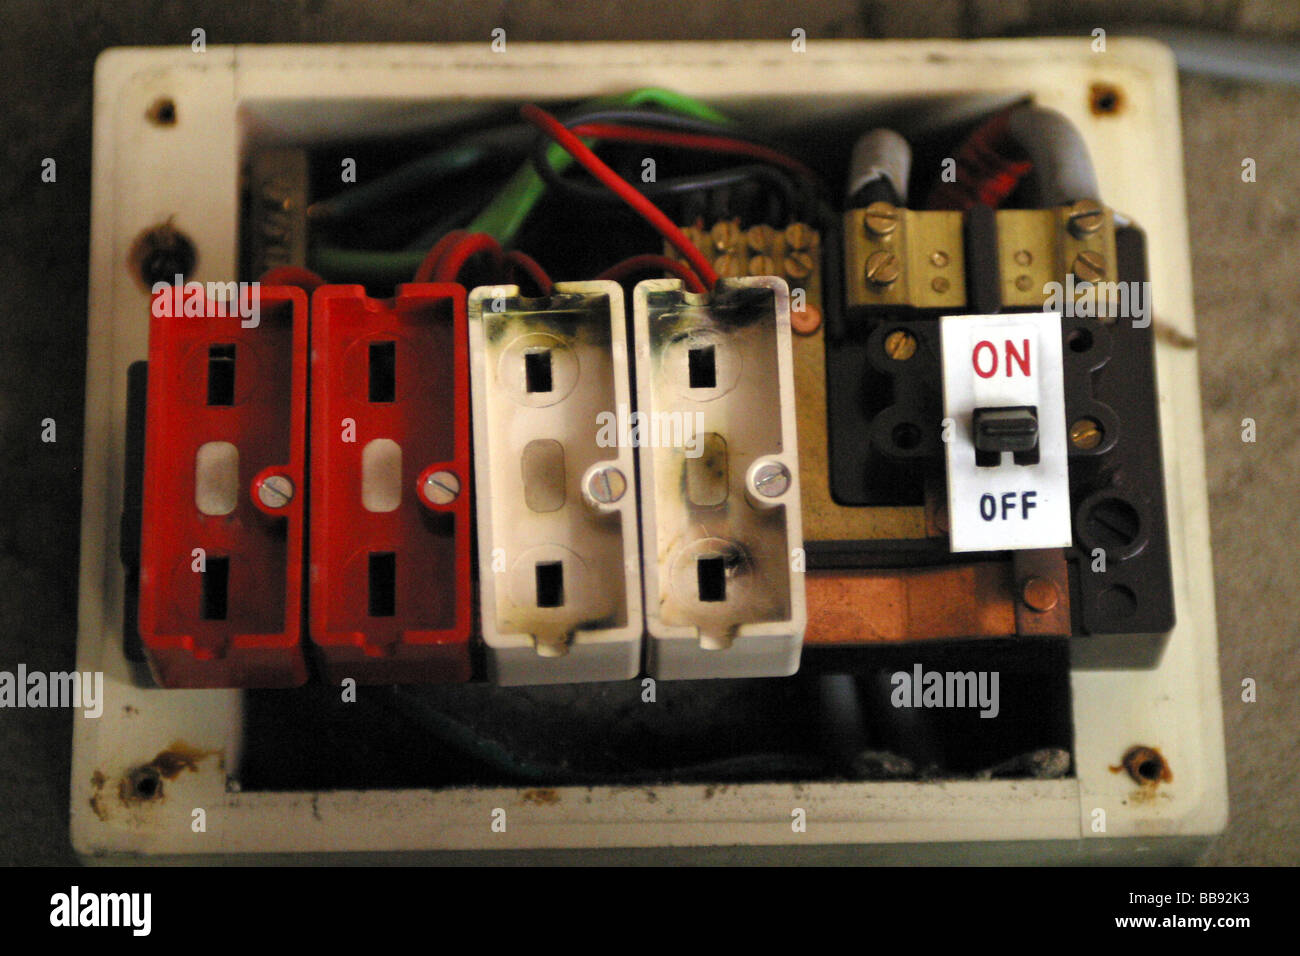 hight resolution of old 50 amp fuse box wiring diagramold 20 amp fuse box new wiring diagramold fuse box